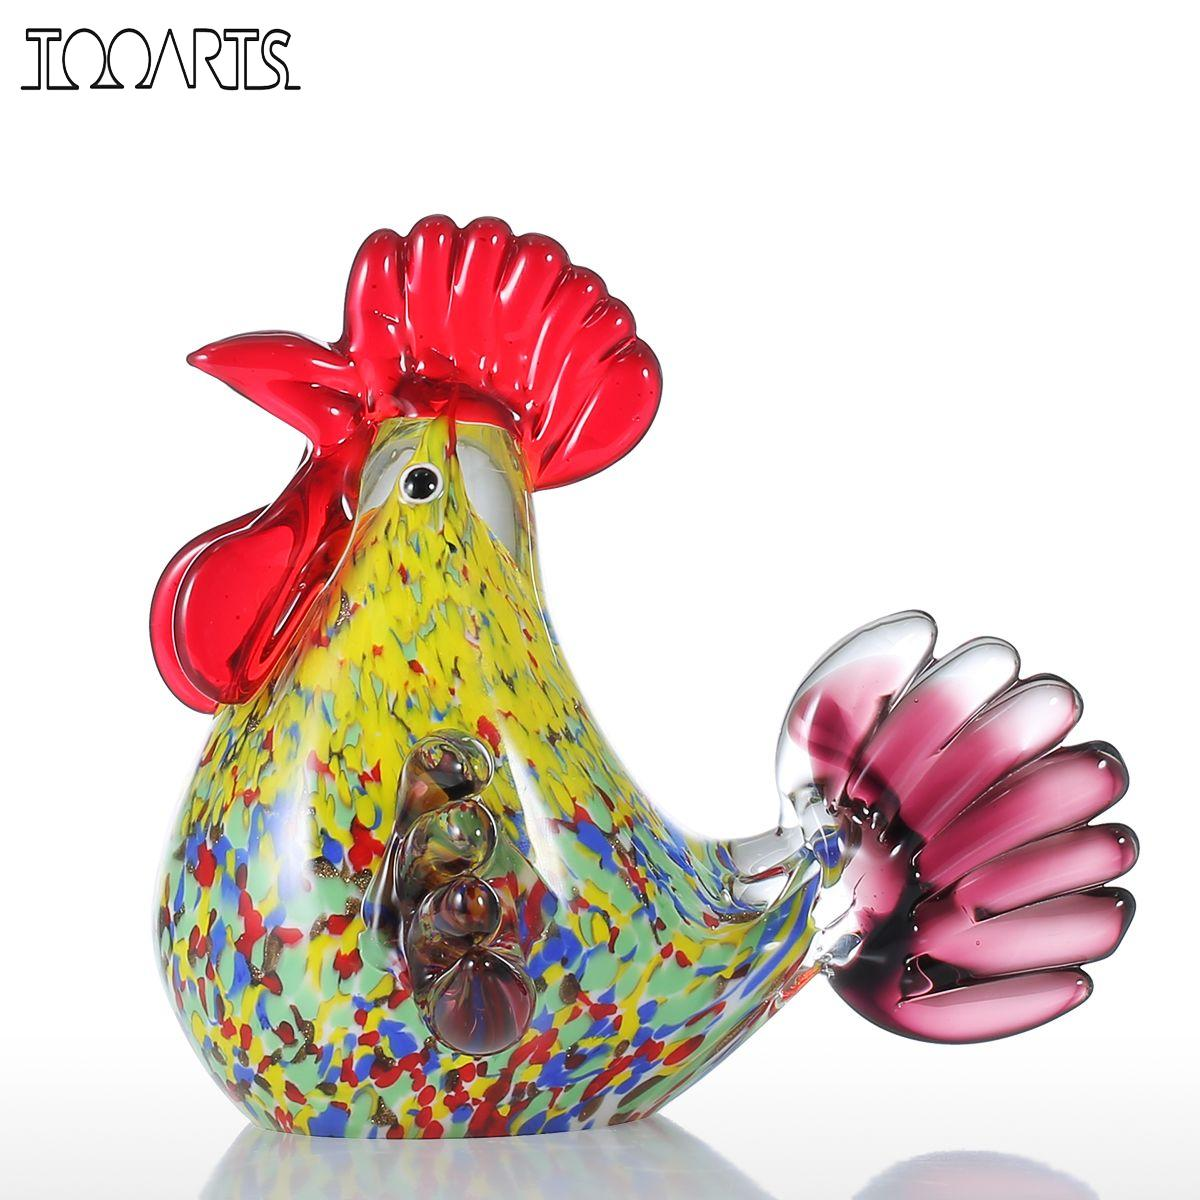 Glass animal ornaments - Tooarts Multicolor Rooster Figurine Glass Miniature Figurine Home Decor Animal Ornament Gift Glass Handicraft For Home